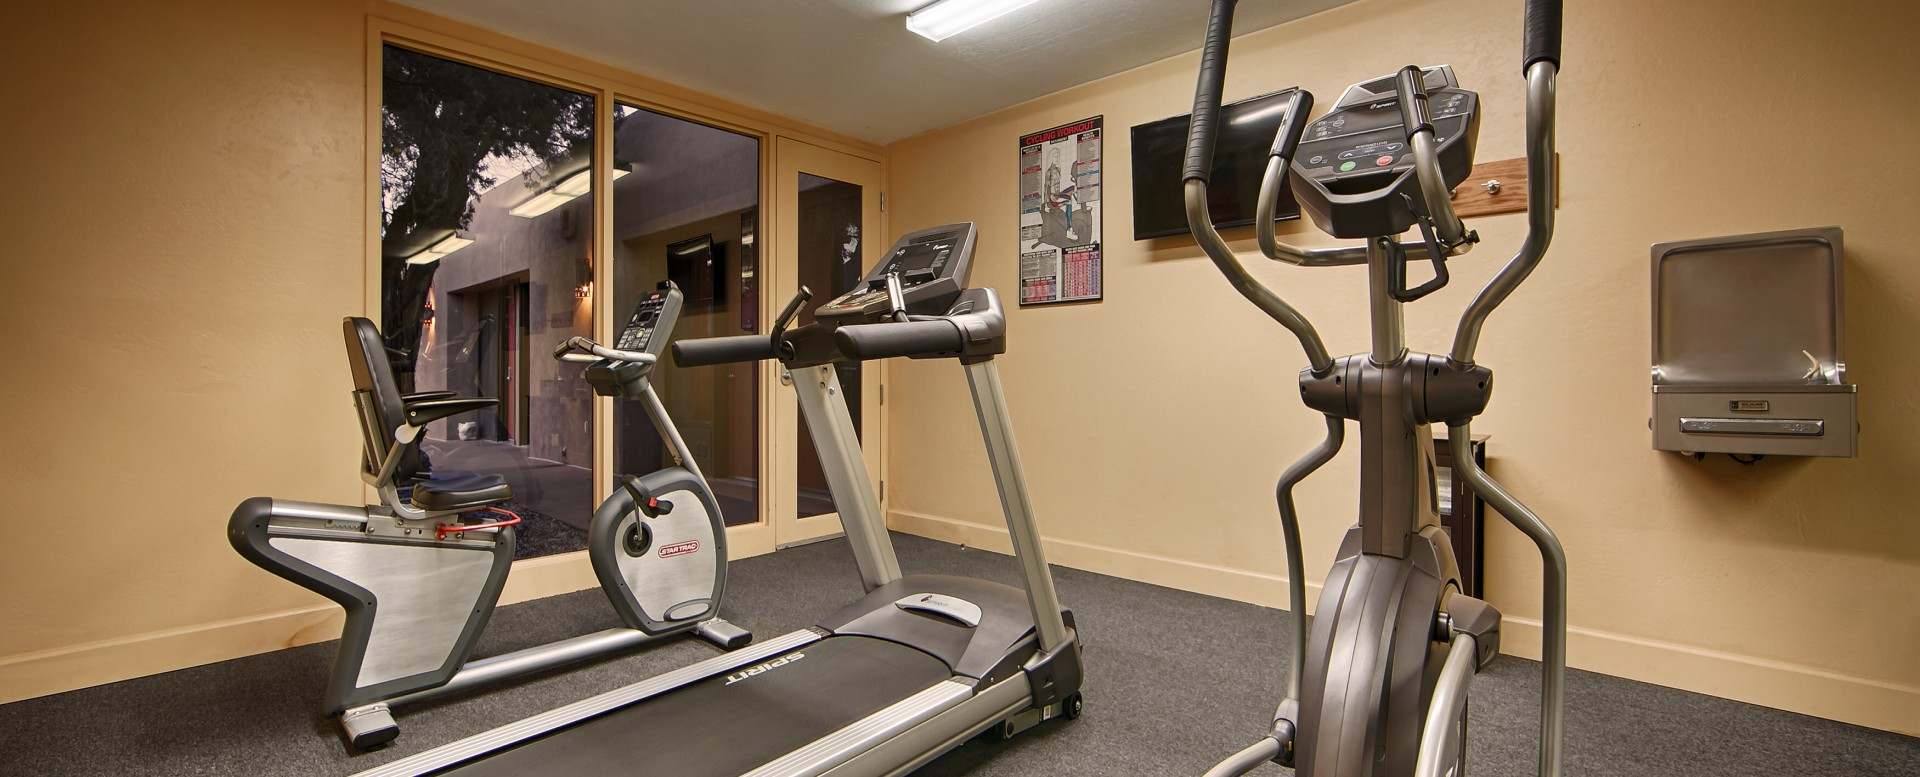 Best Western Plus Inn of Sedona-Fitness Center